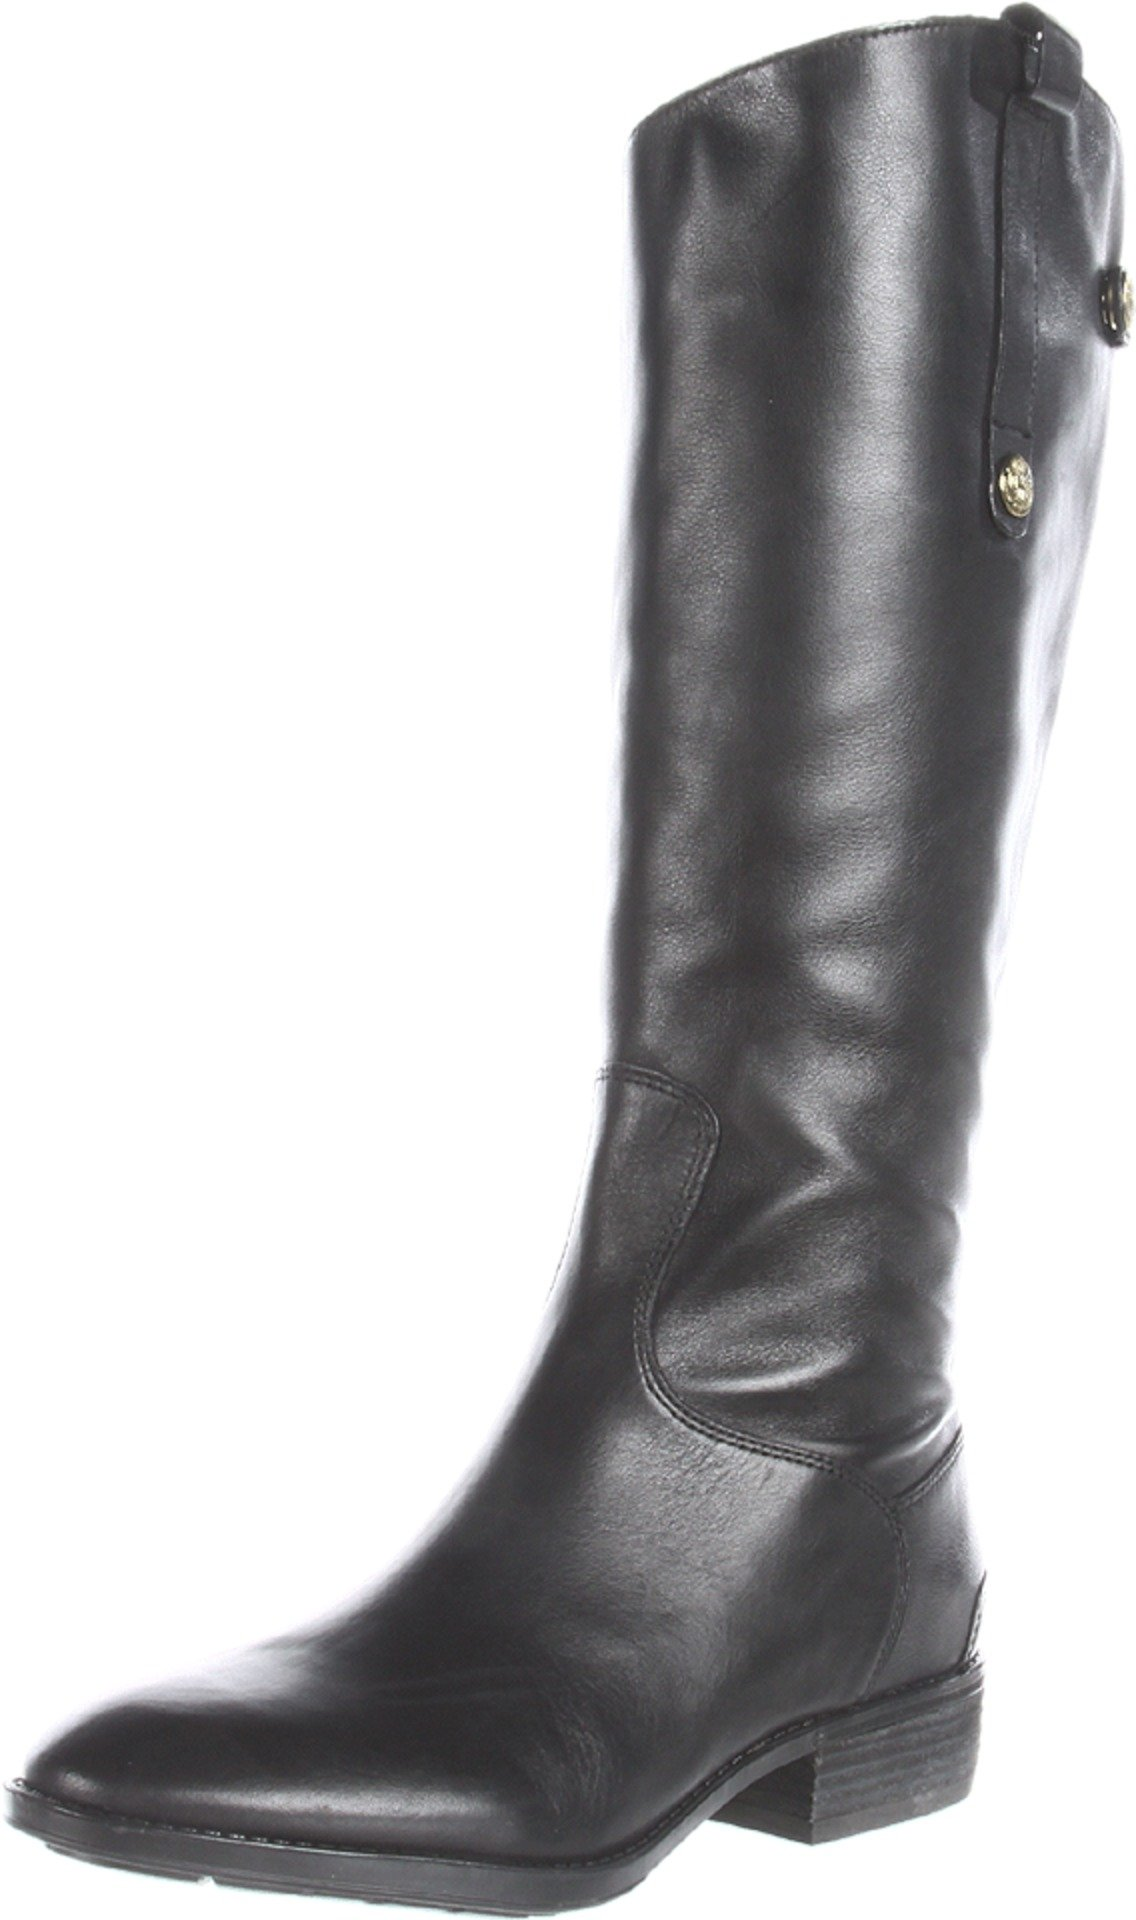 Sam Edelman Women's Penny Riding Boot, Black Leather, 9.5 M US